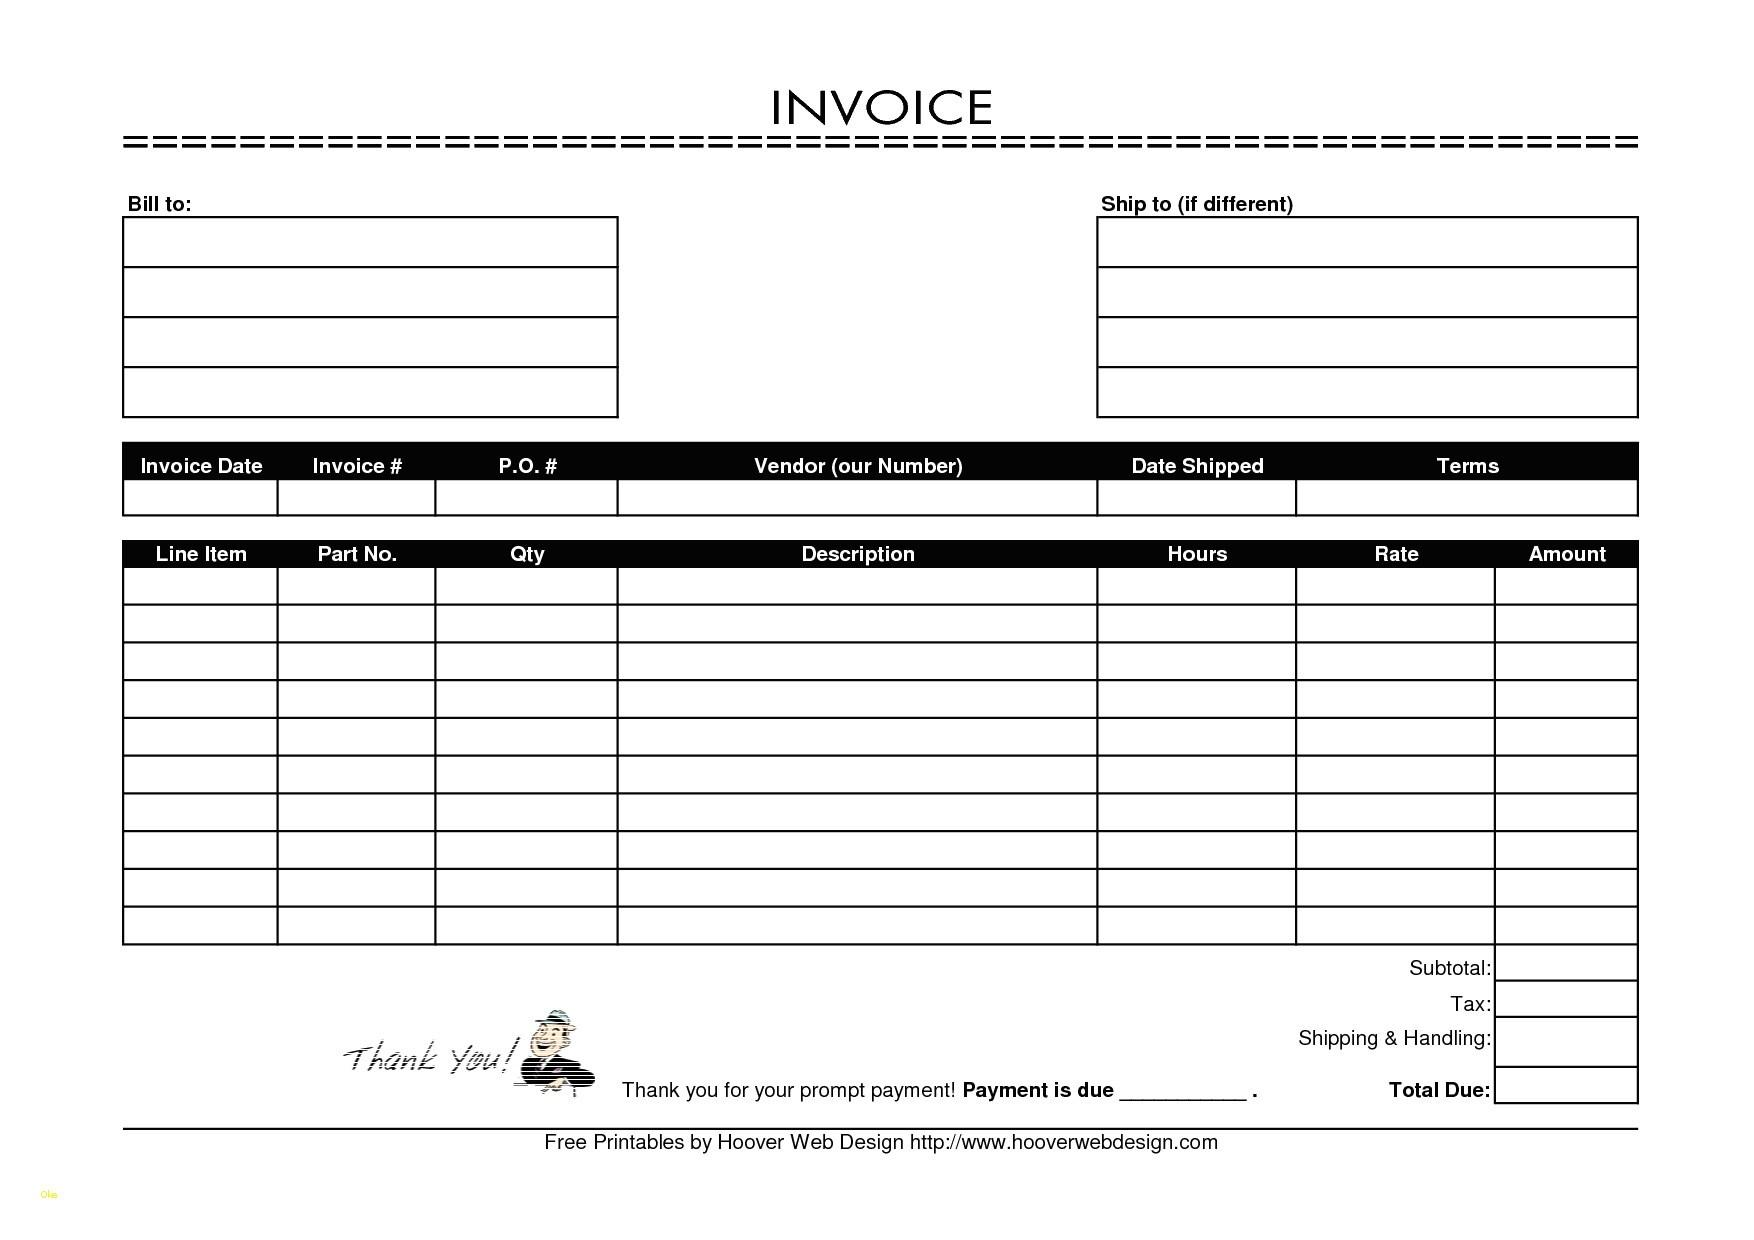 Free Printable Invoice Template Ireland